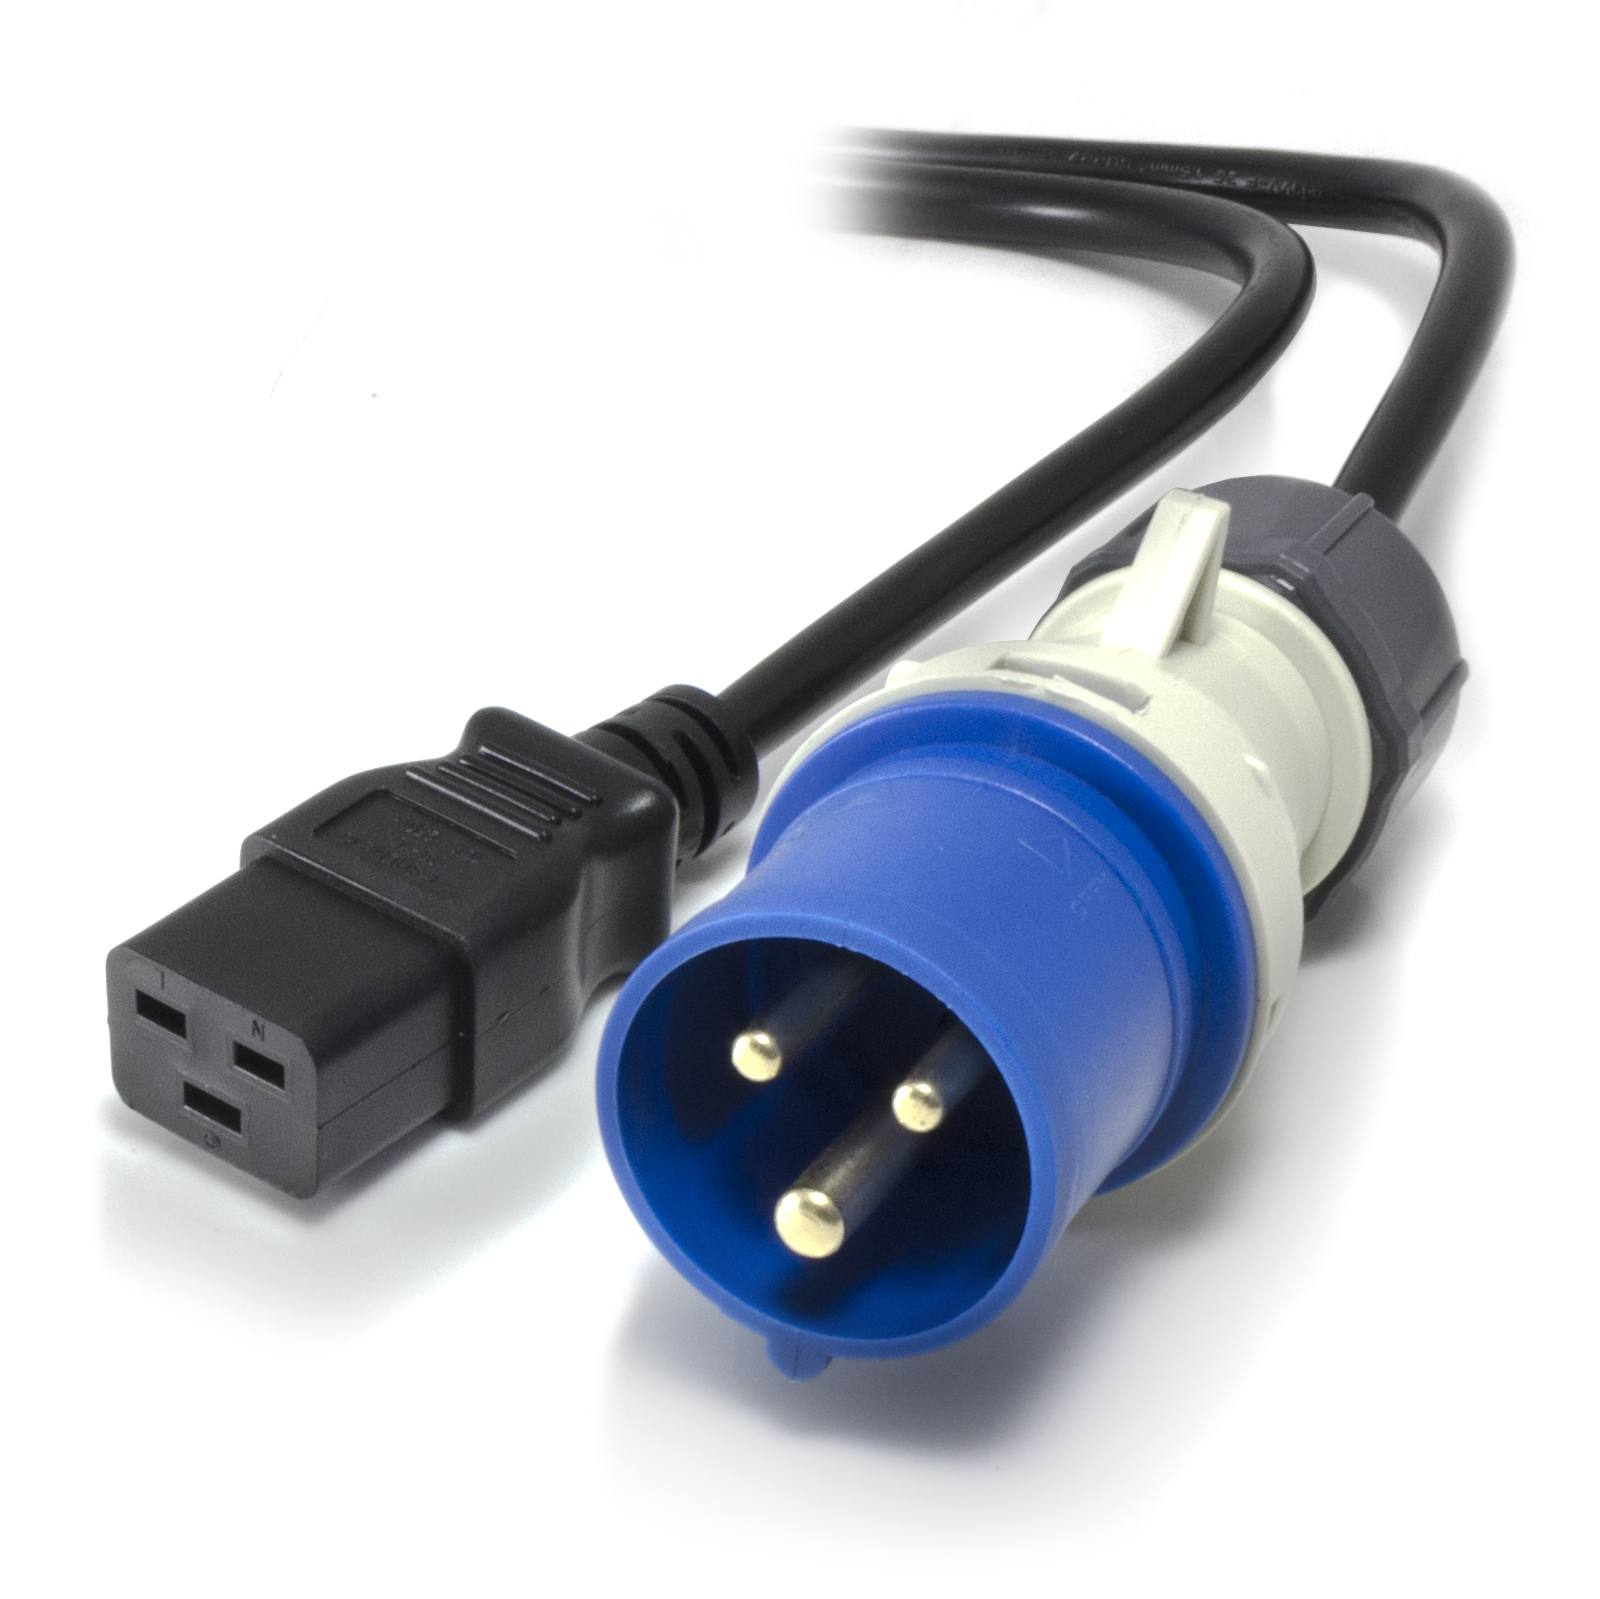 Product Power Cable : M iec c to a pin industrial plug ip power